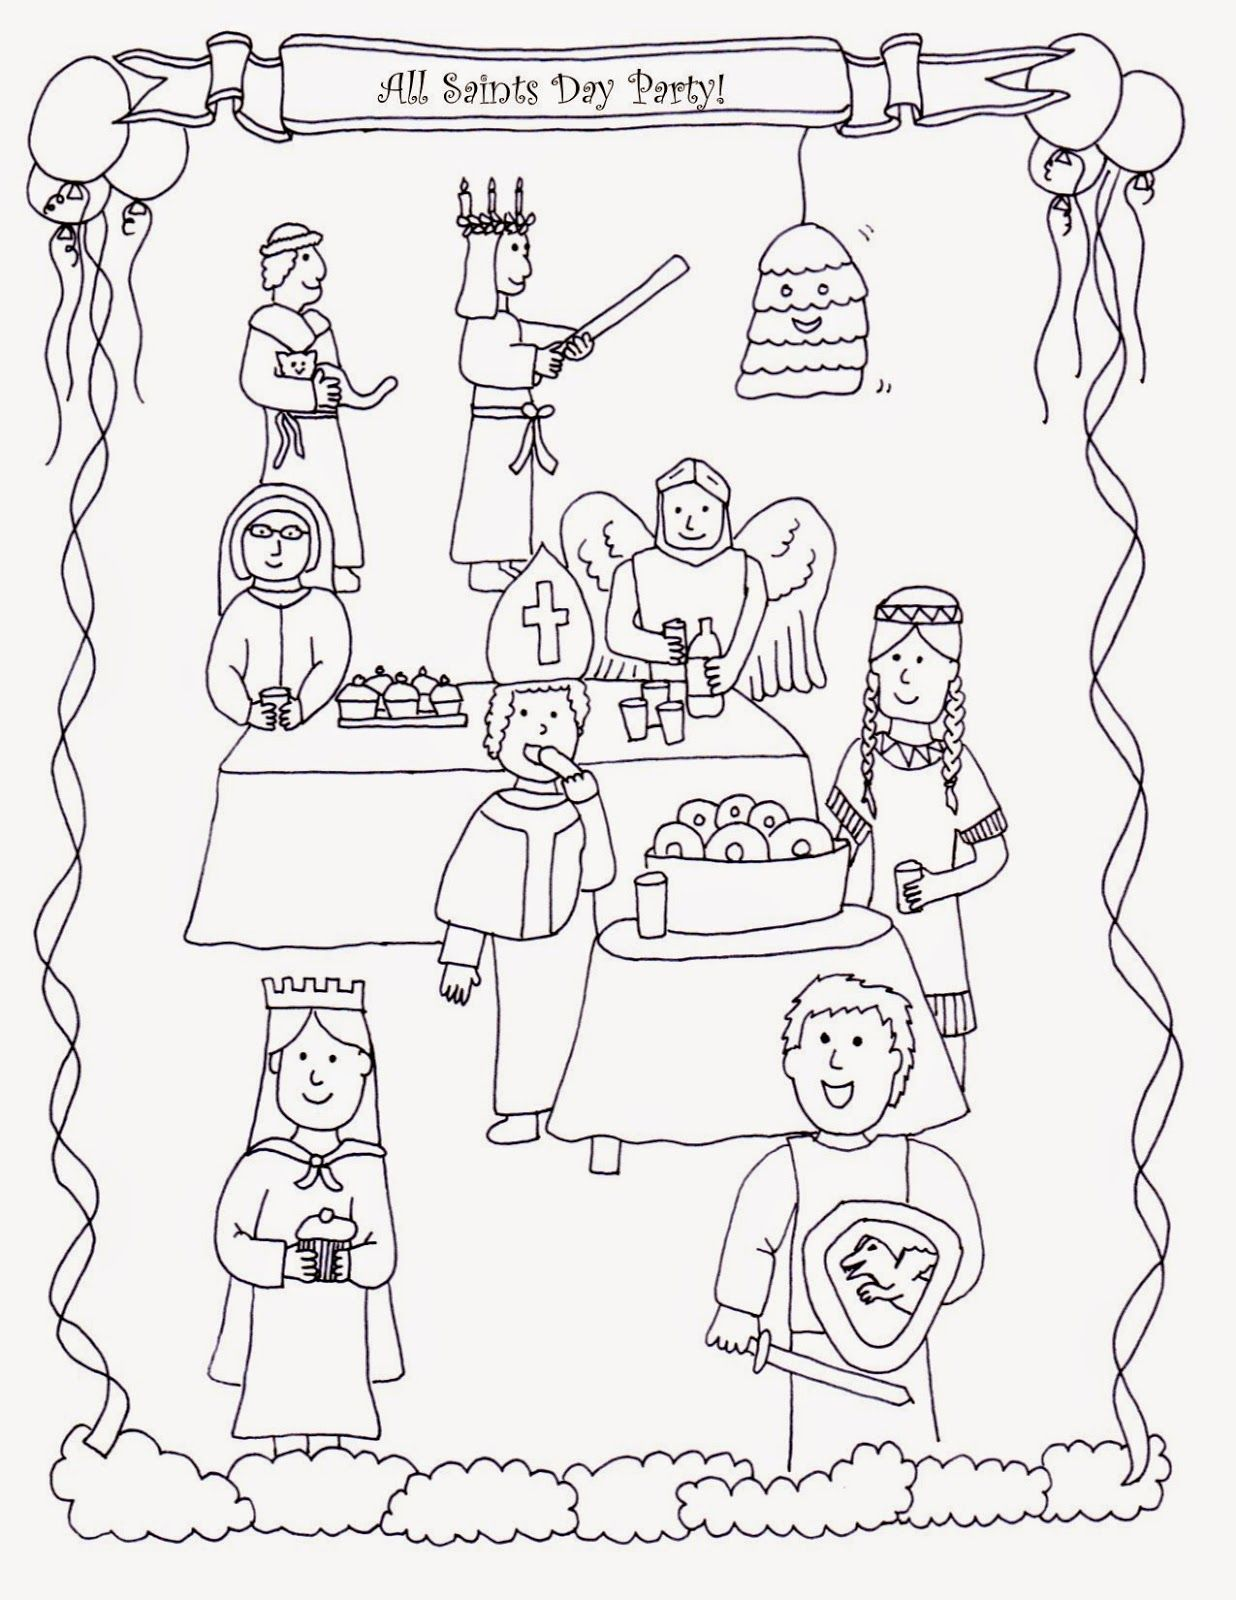 all saints day coloring pages Drawn2BCreative: All Saints Day Coloring Page | crafts | All  all saints day coloring pages